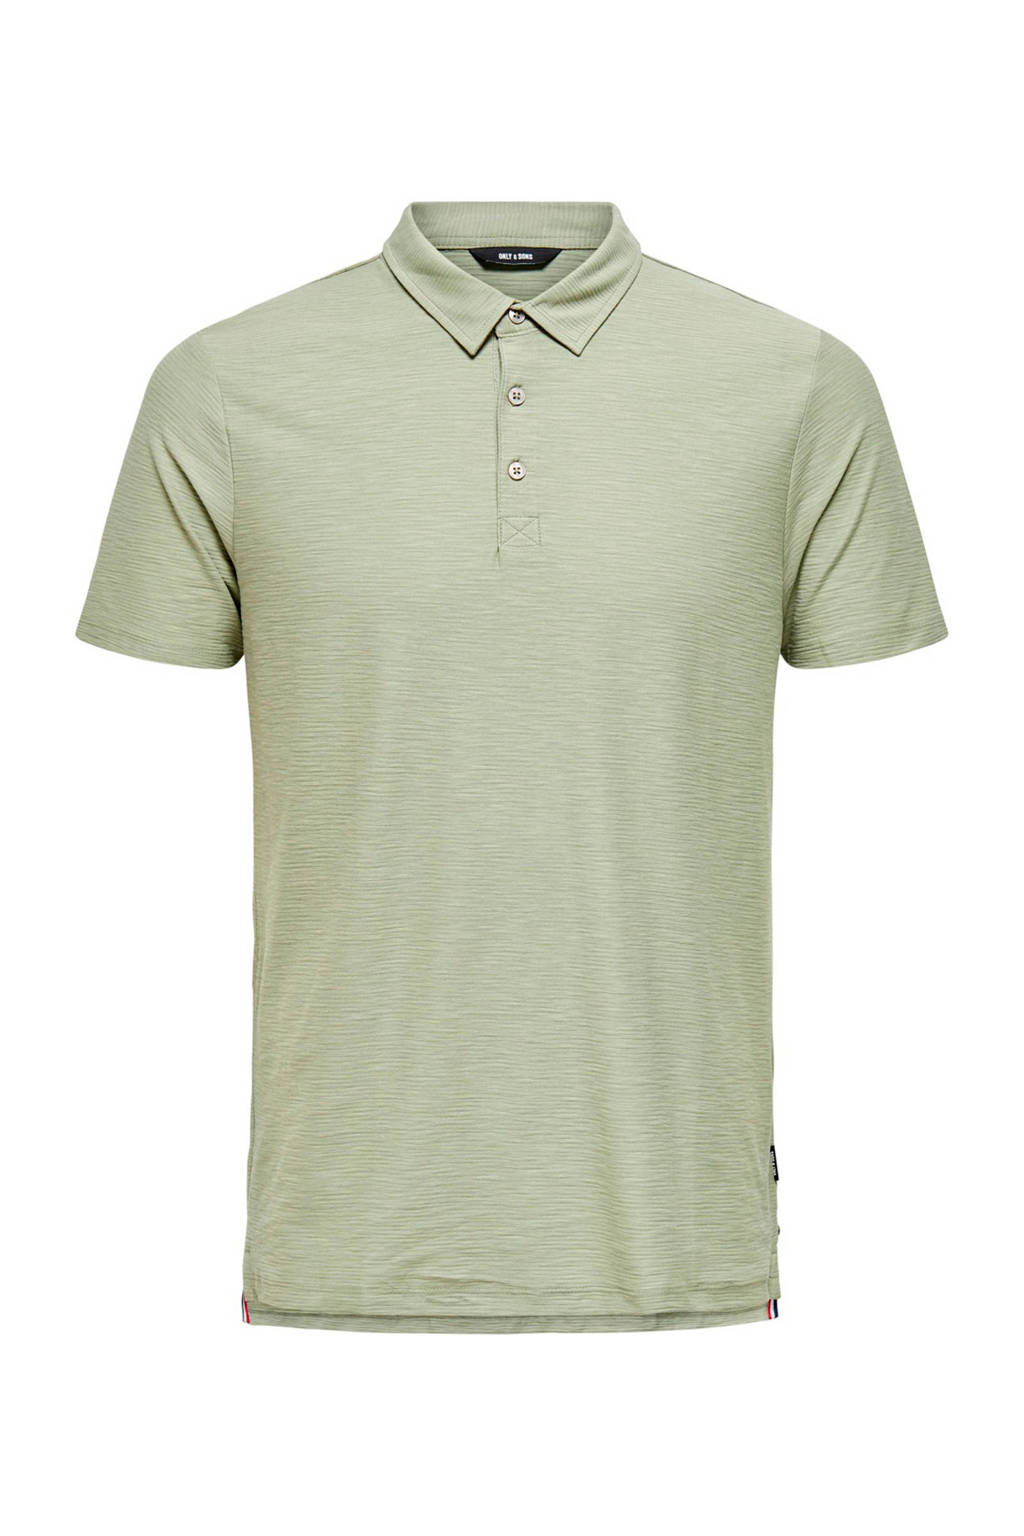 ONLY & SONS slim fit polo seagrass